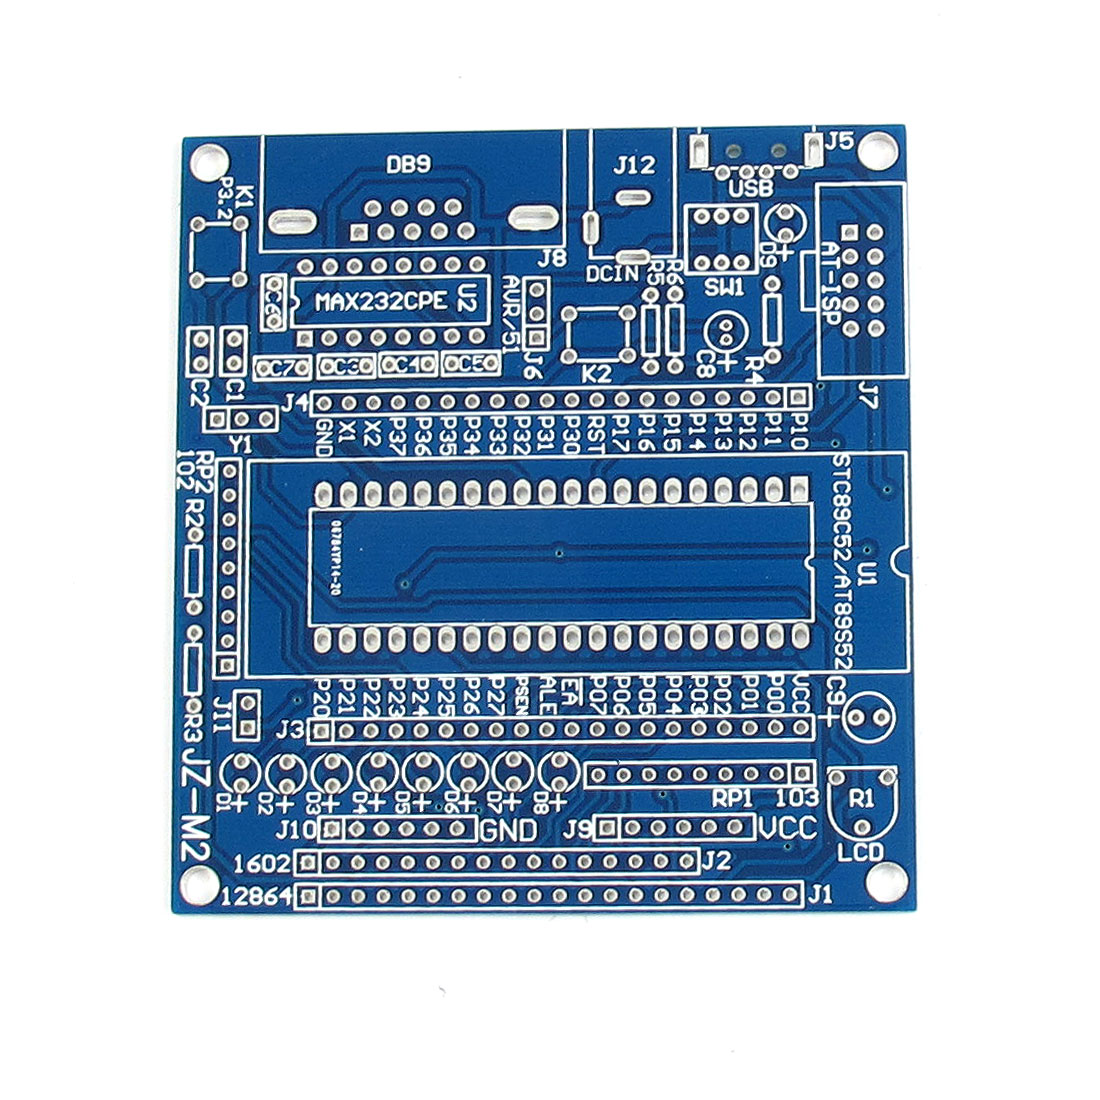 JZ-M2 Mini 51 AVR MCU Microcontroller Data Download PCB Blank Board 82mm x 75mm